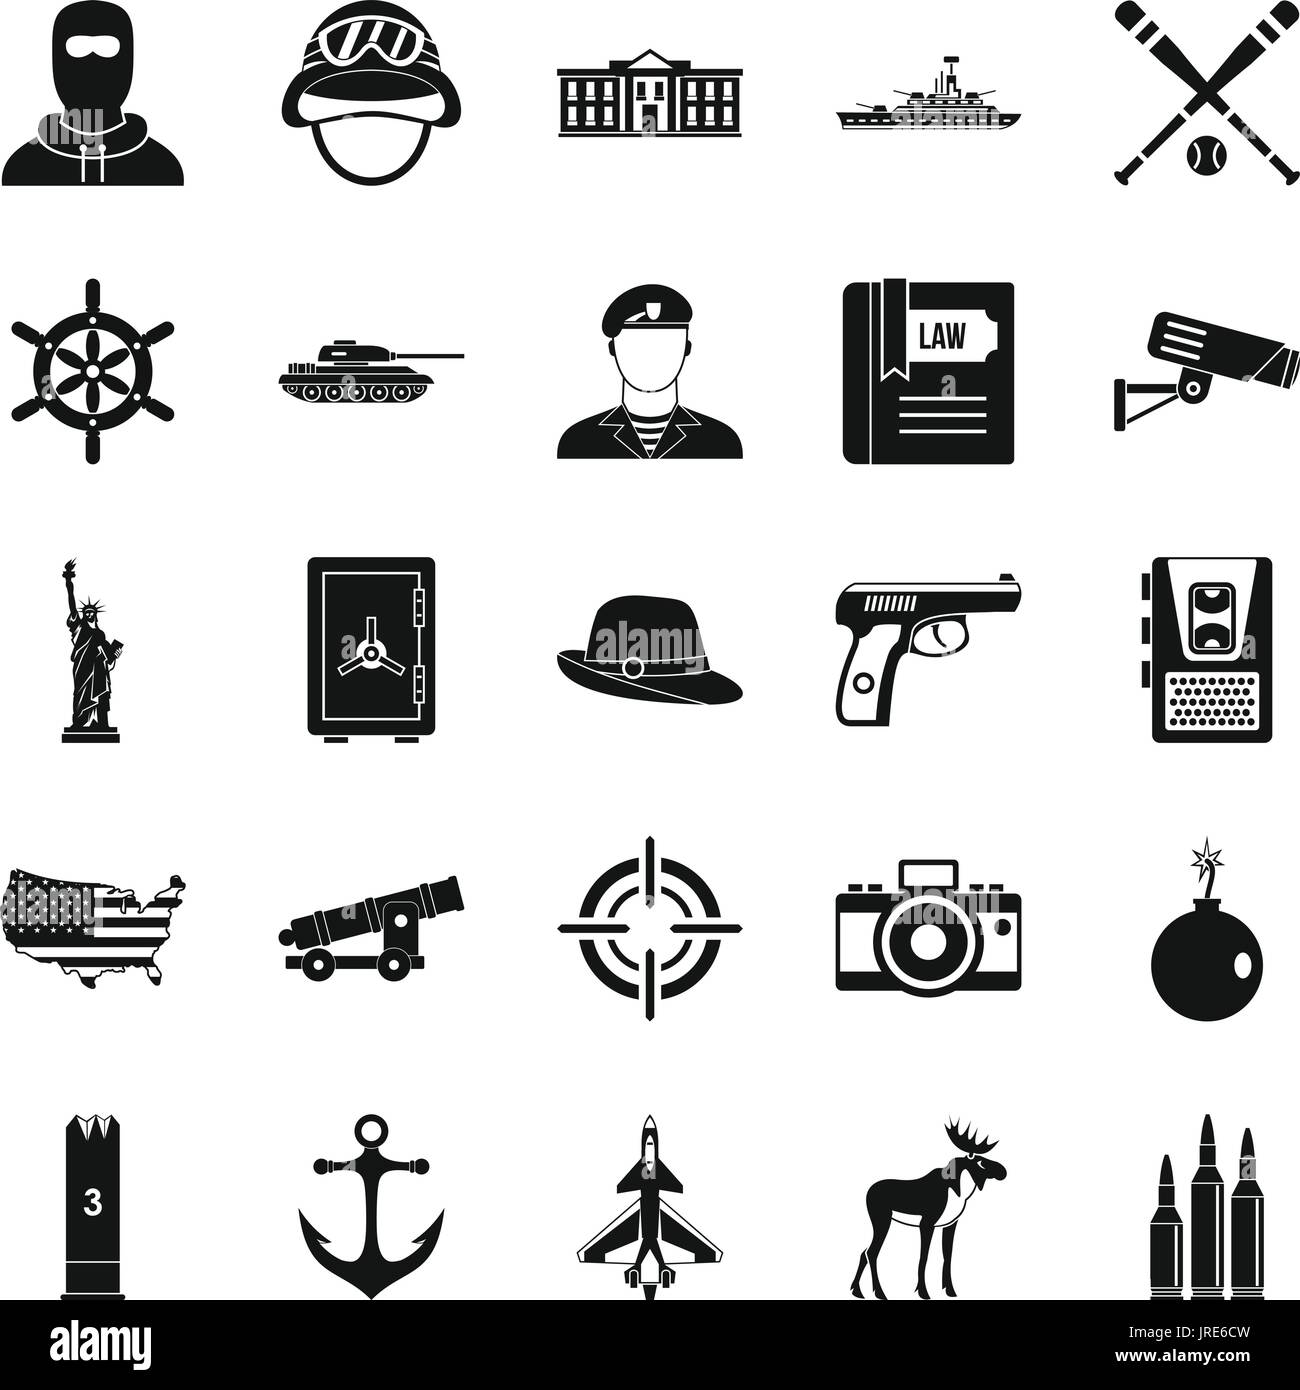 Bullet icons set, simple style - Stock Image